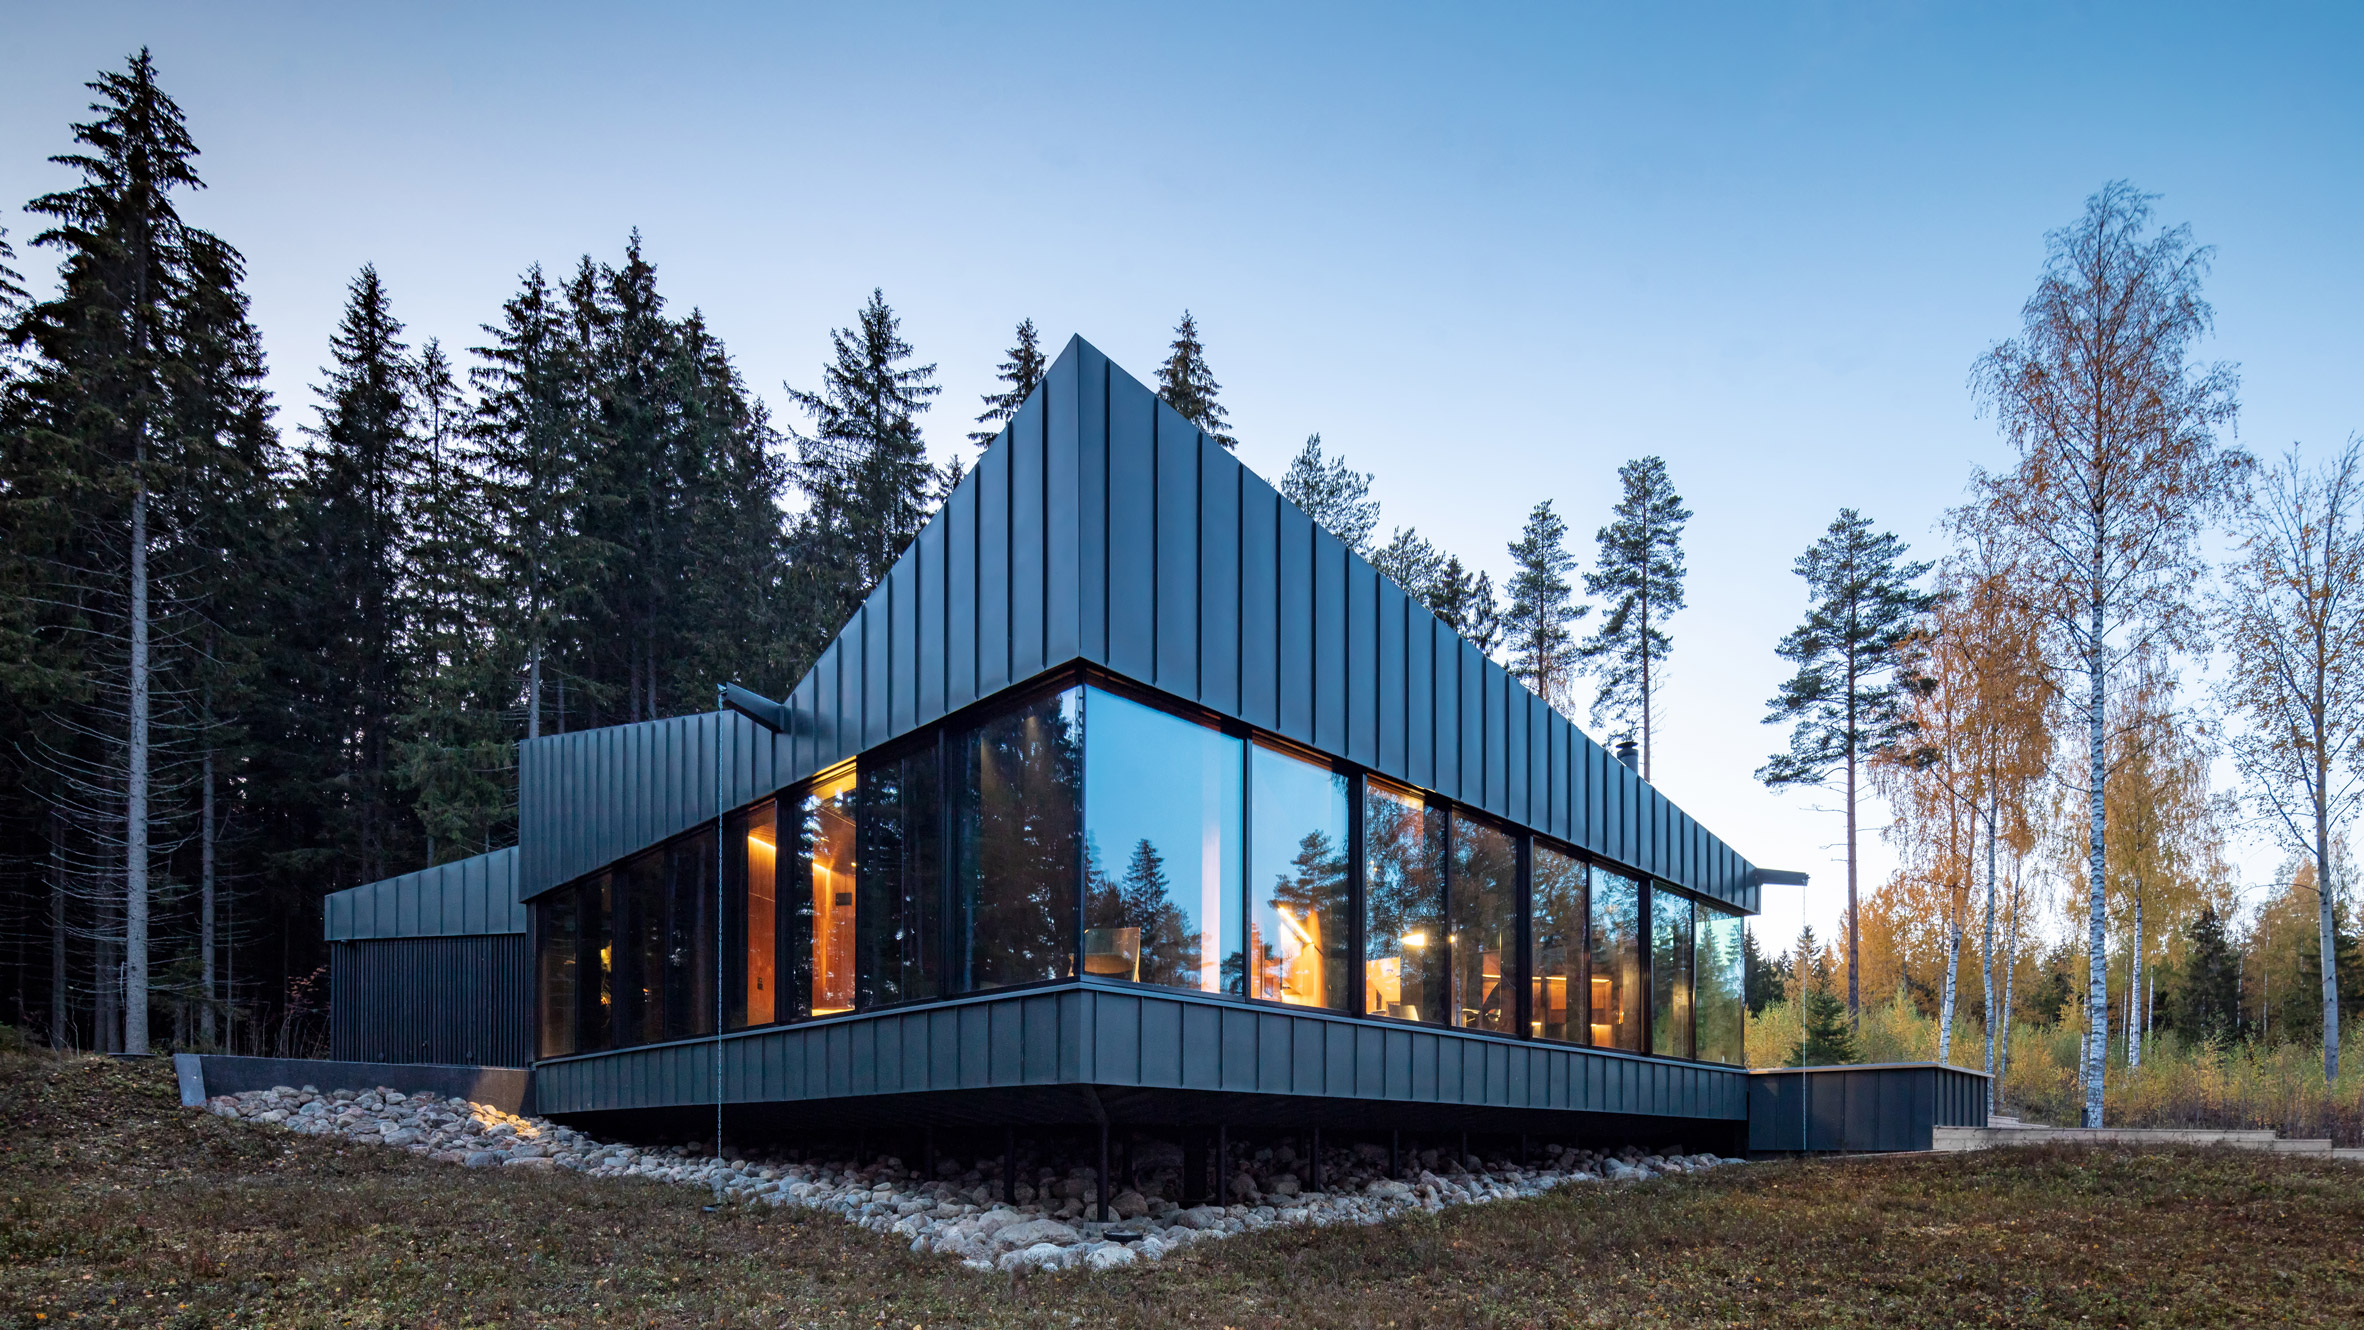 Home clad in windows and dark zinc siding.